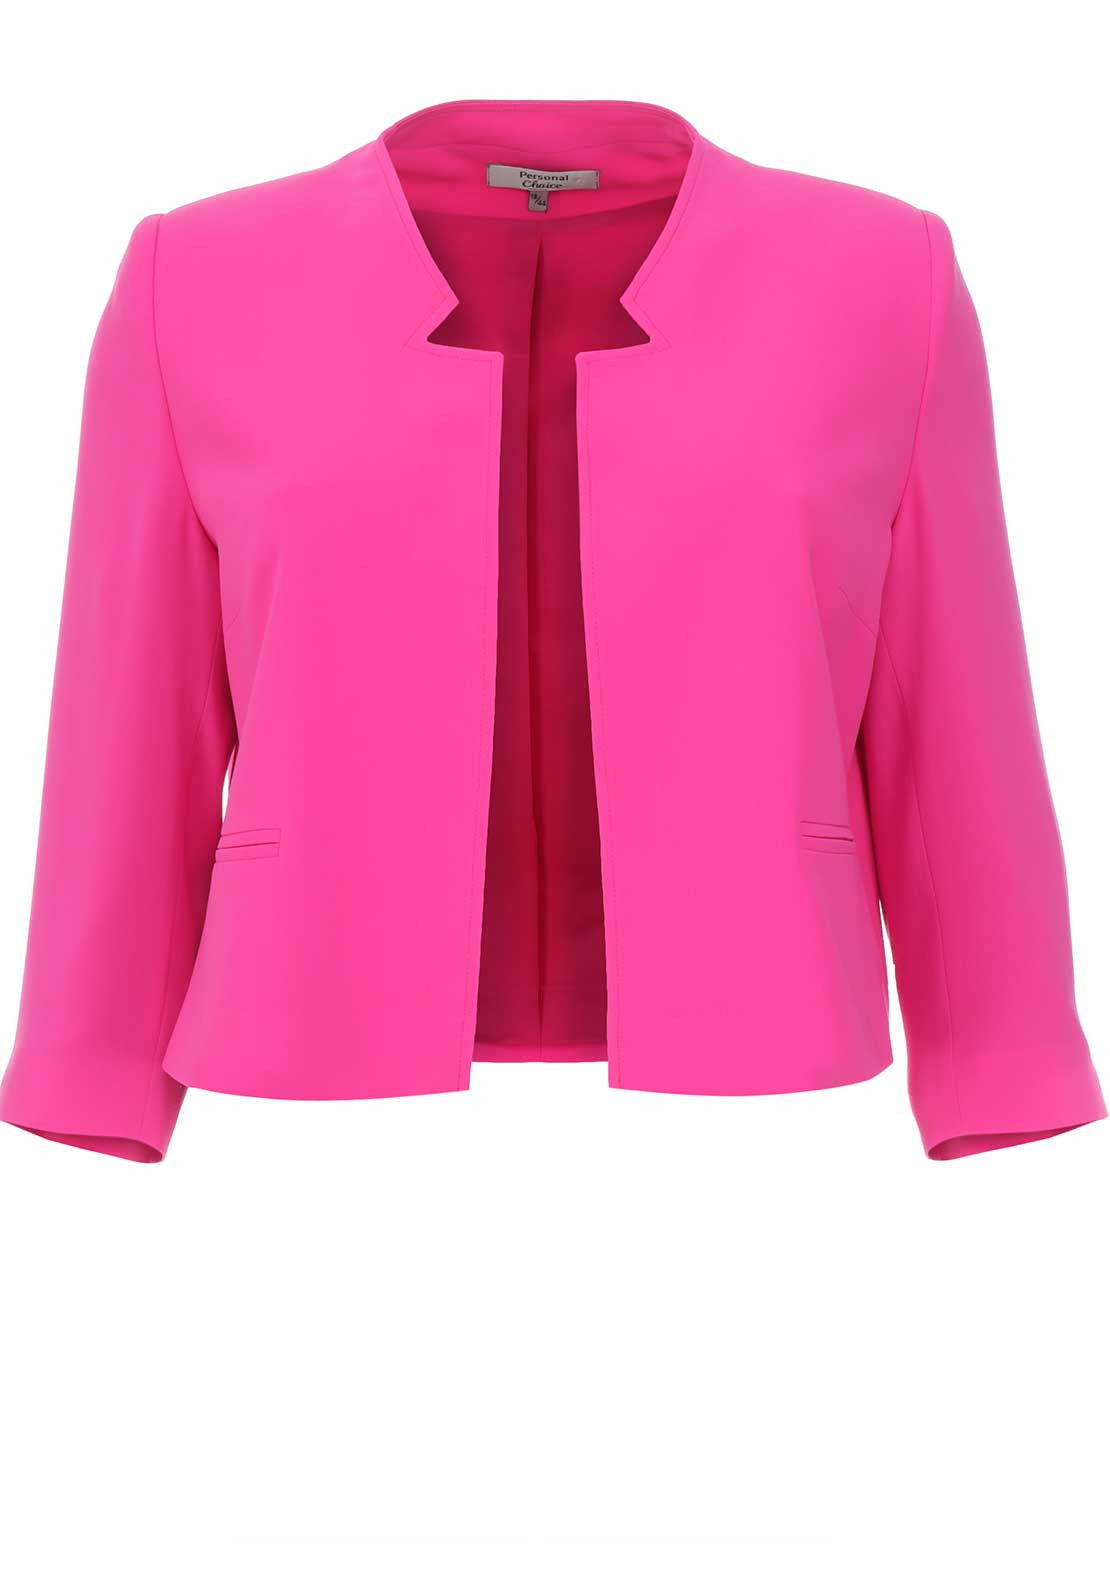 Denim Blazer For Women: Personal Choice Cropped Jacket, Hot Pink